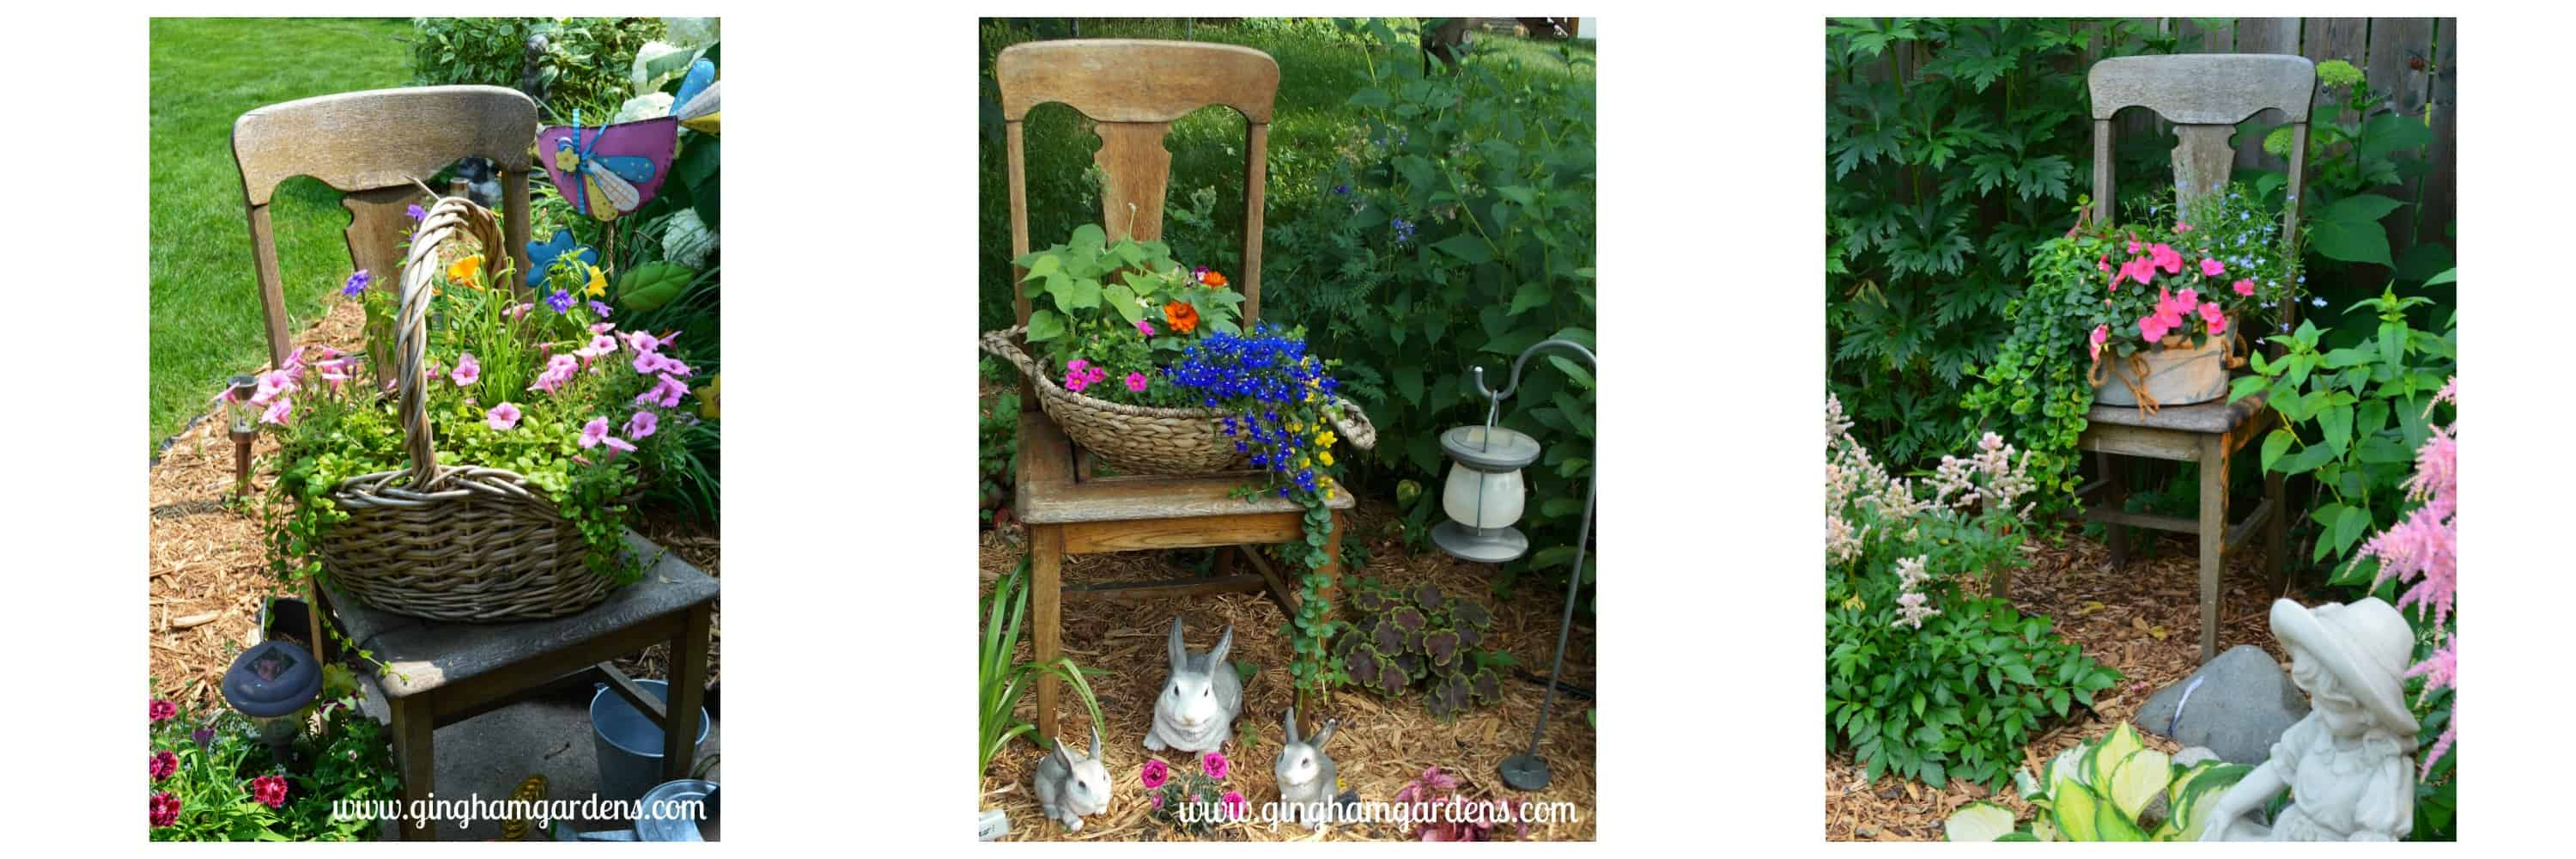 Vintage chair used in garden vignettes.